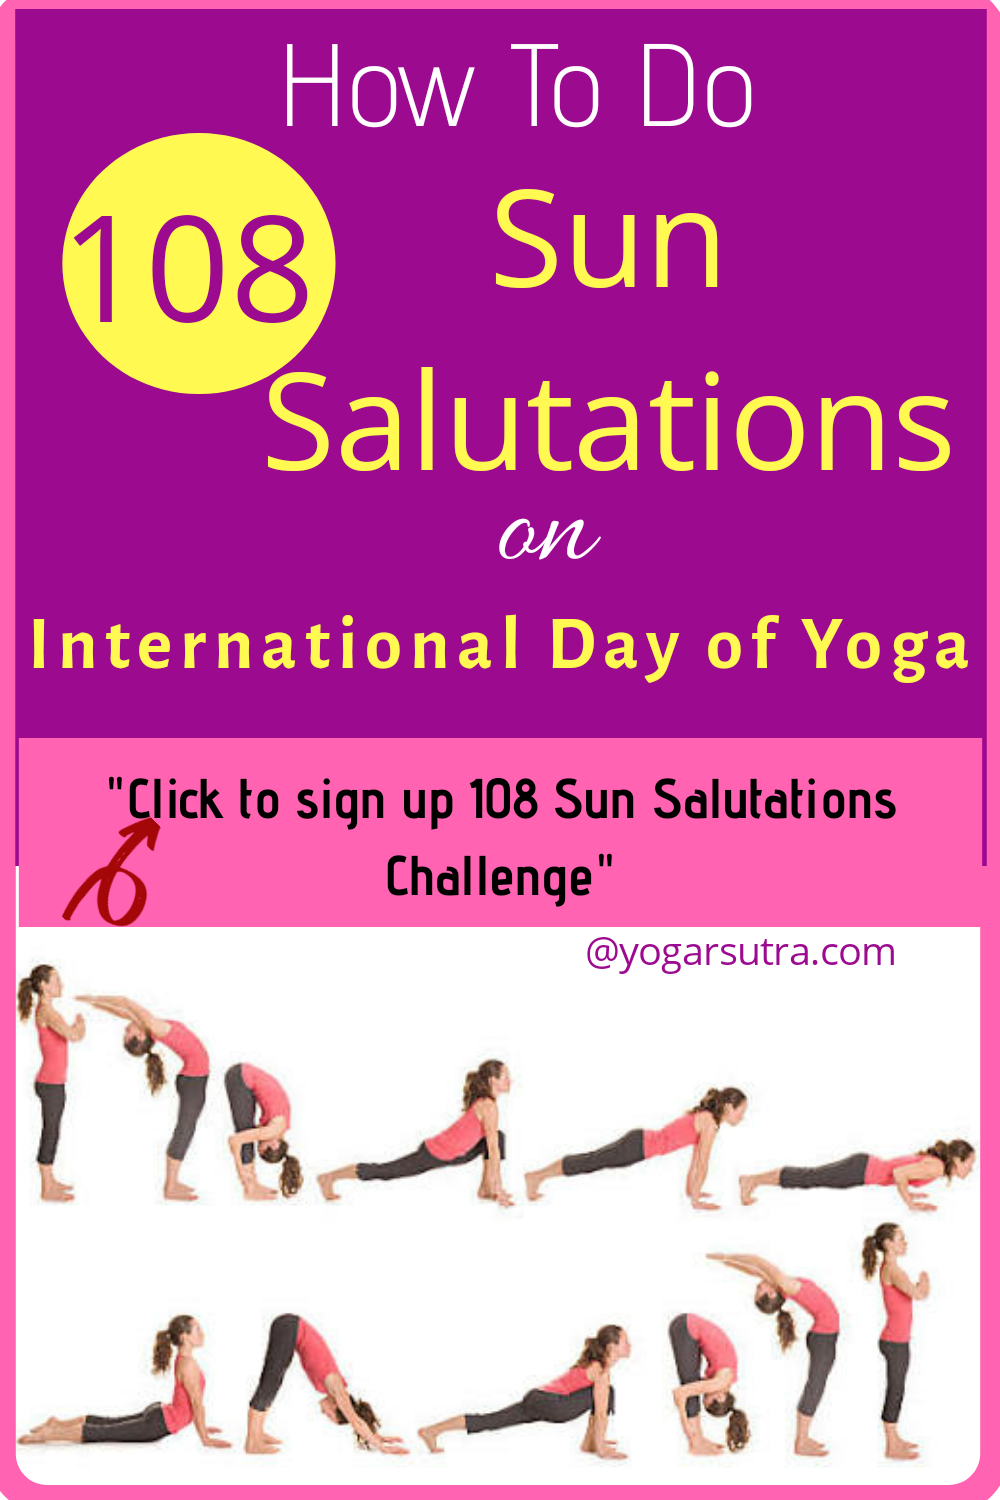 108 Sun Salutations Challenge On International Day Of Yoga Boost Your Will Power And Stamina Yogarsutra 108 Sun Salutations Sun Salutation Yoga For Flexibility